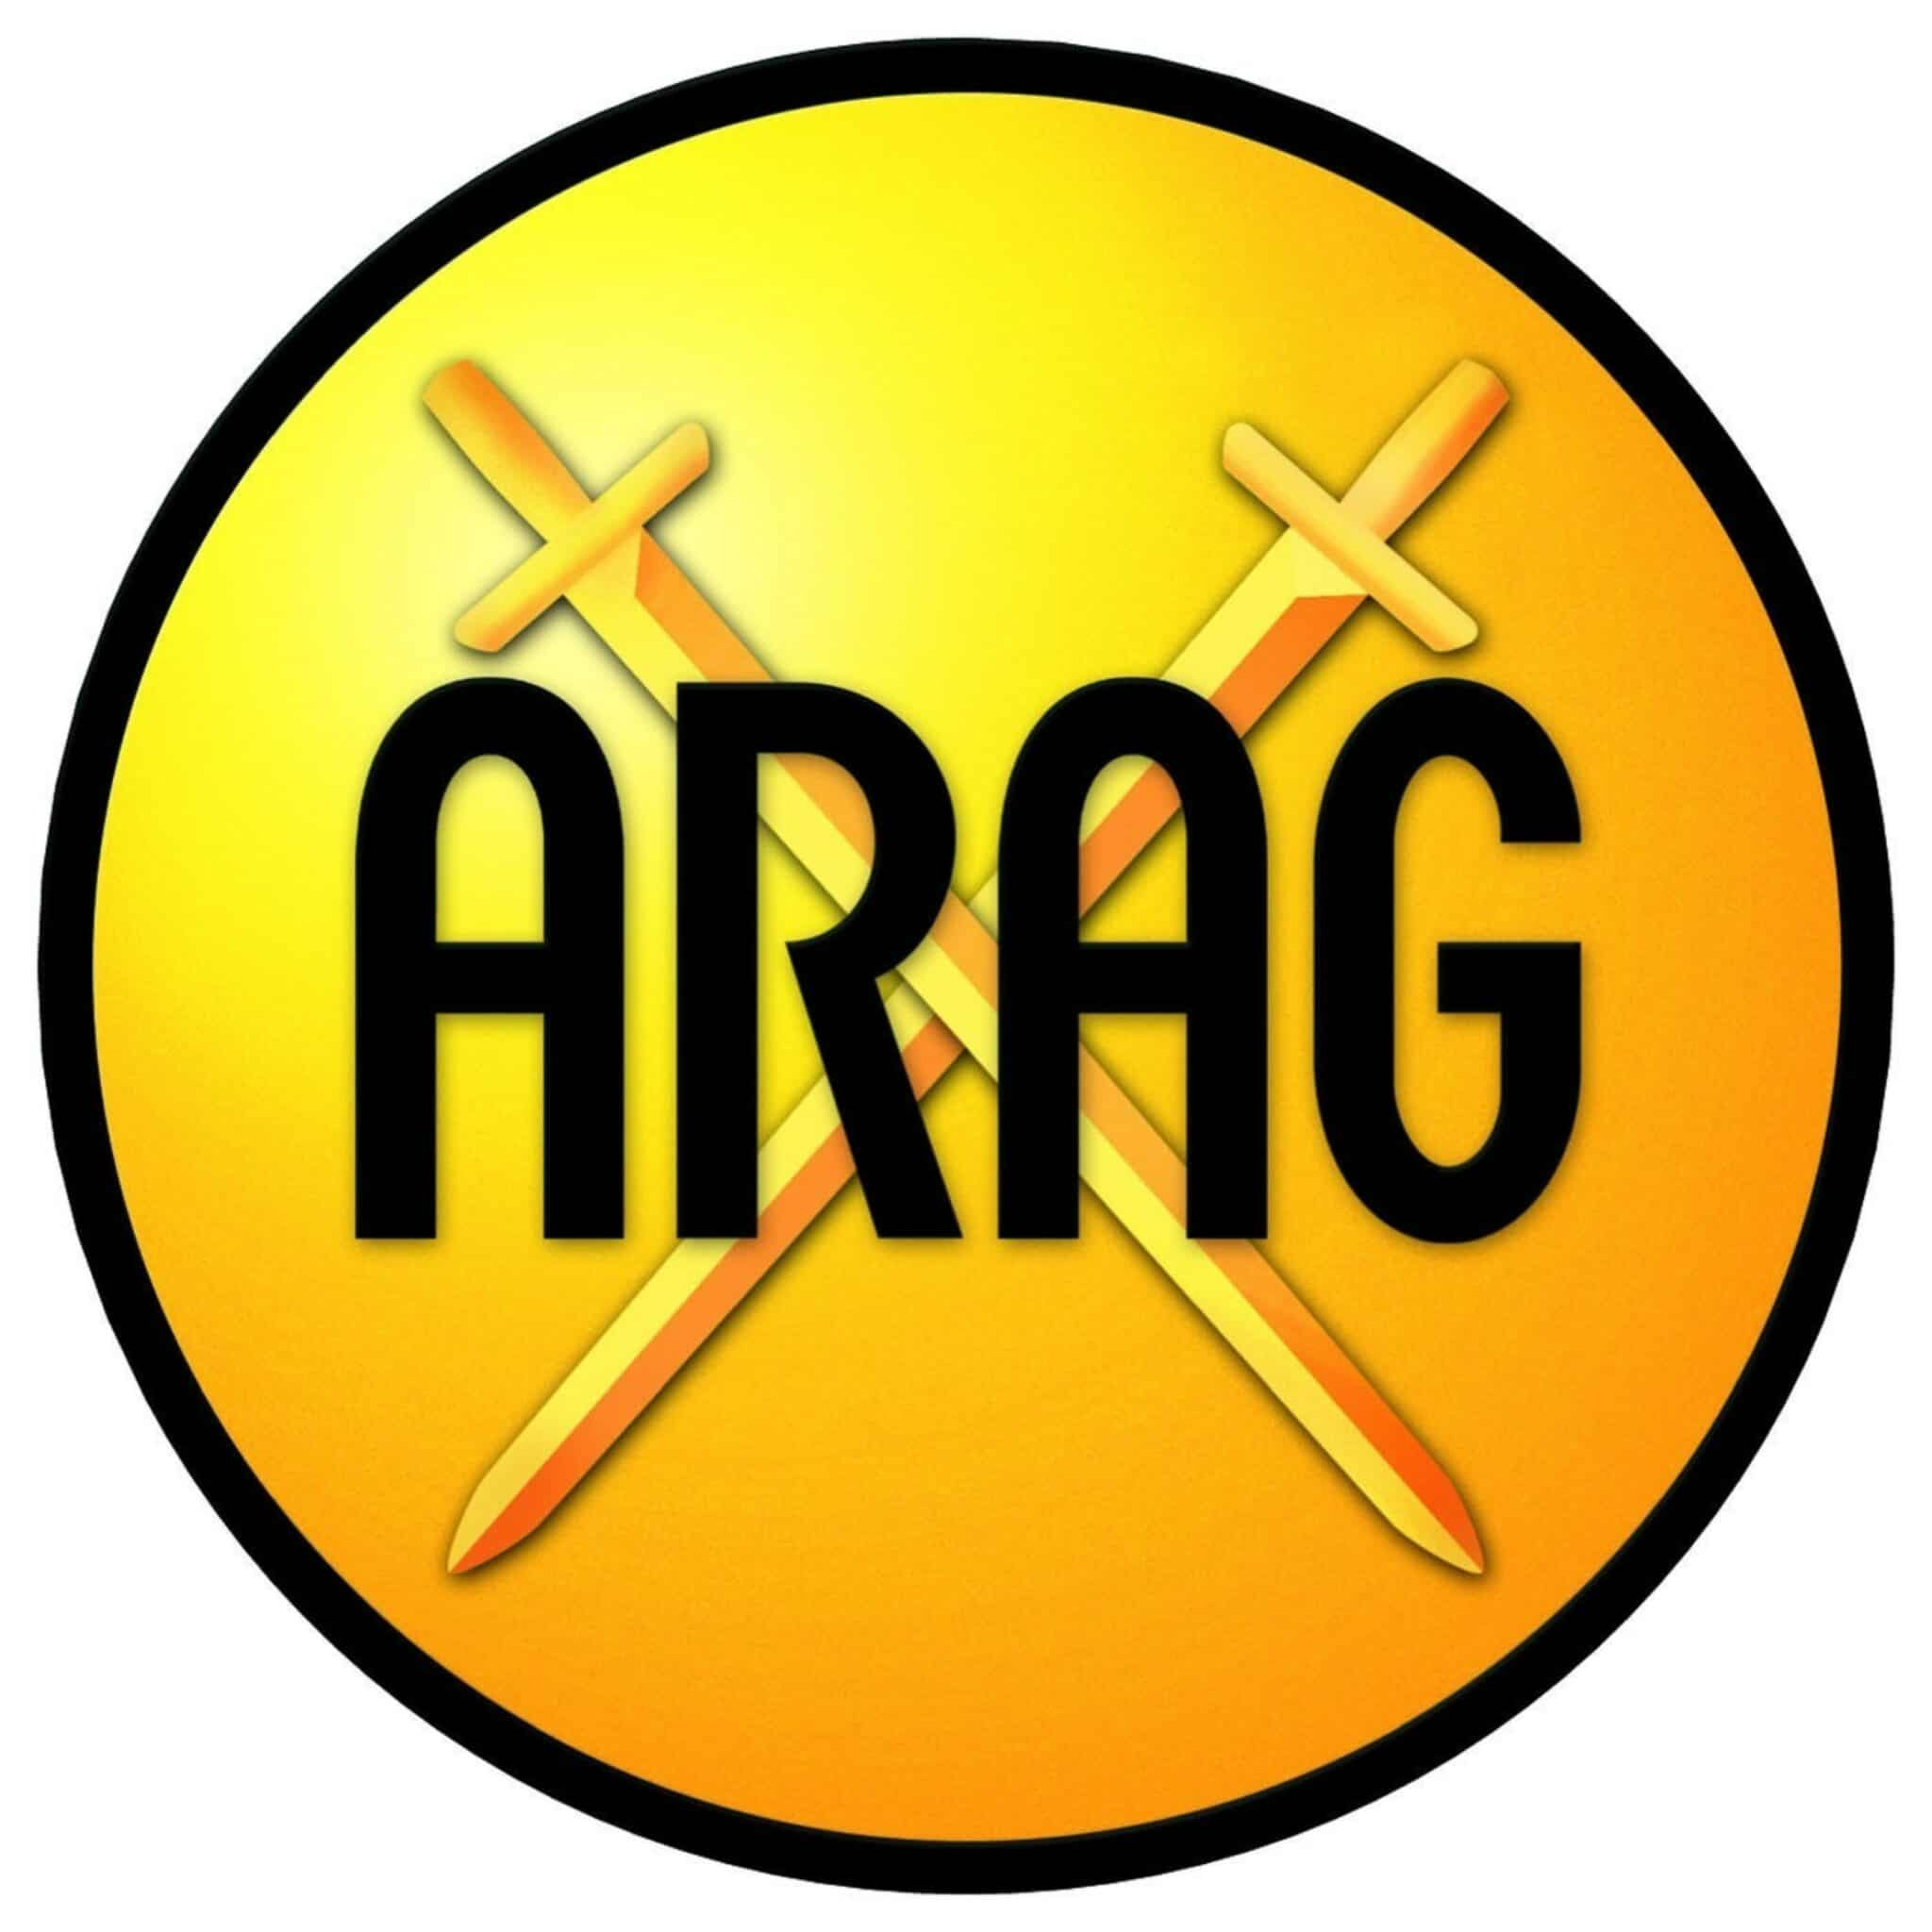 ARAG is a global provider of legal solutions. (PRNewsFoto/ARAG) (PRNewsFoto/ARAG)